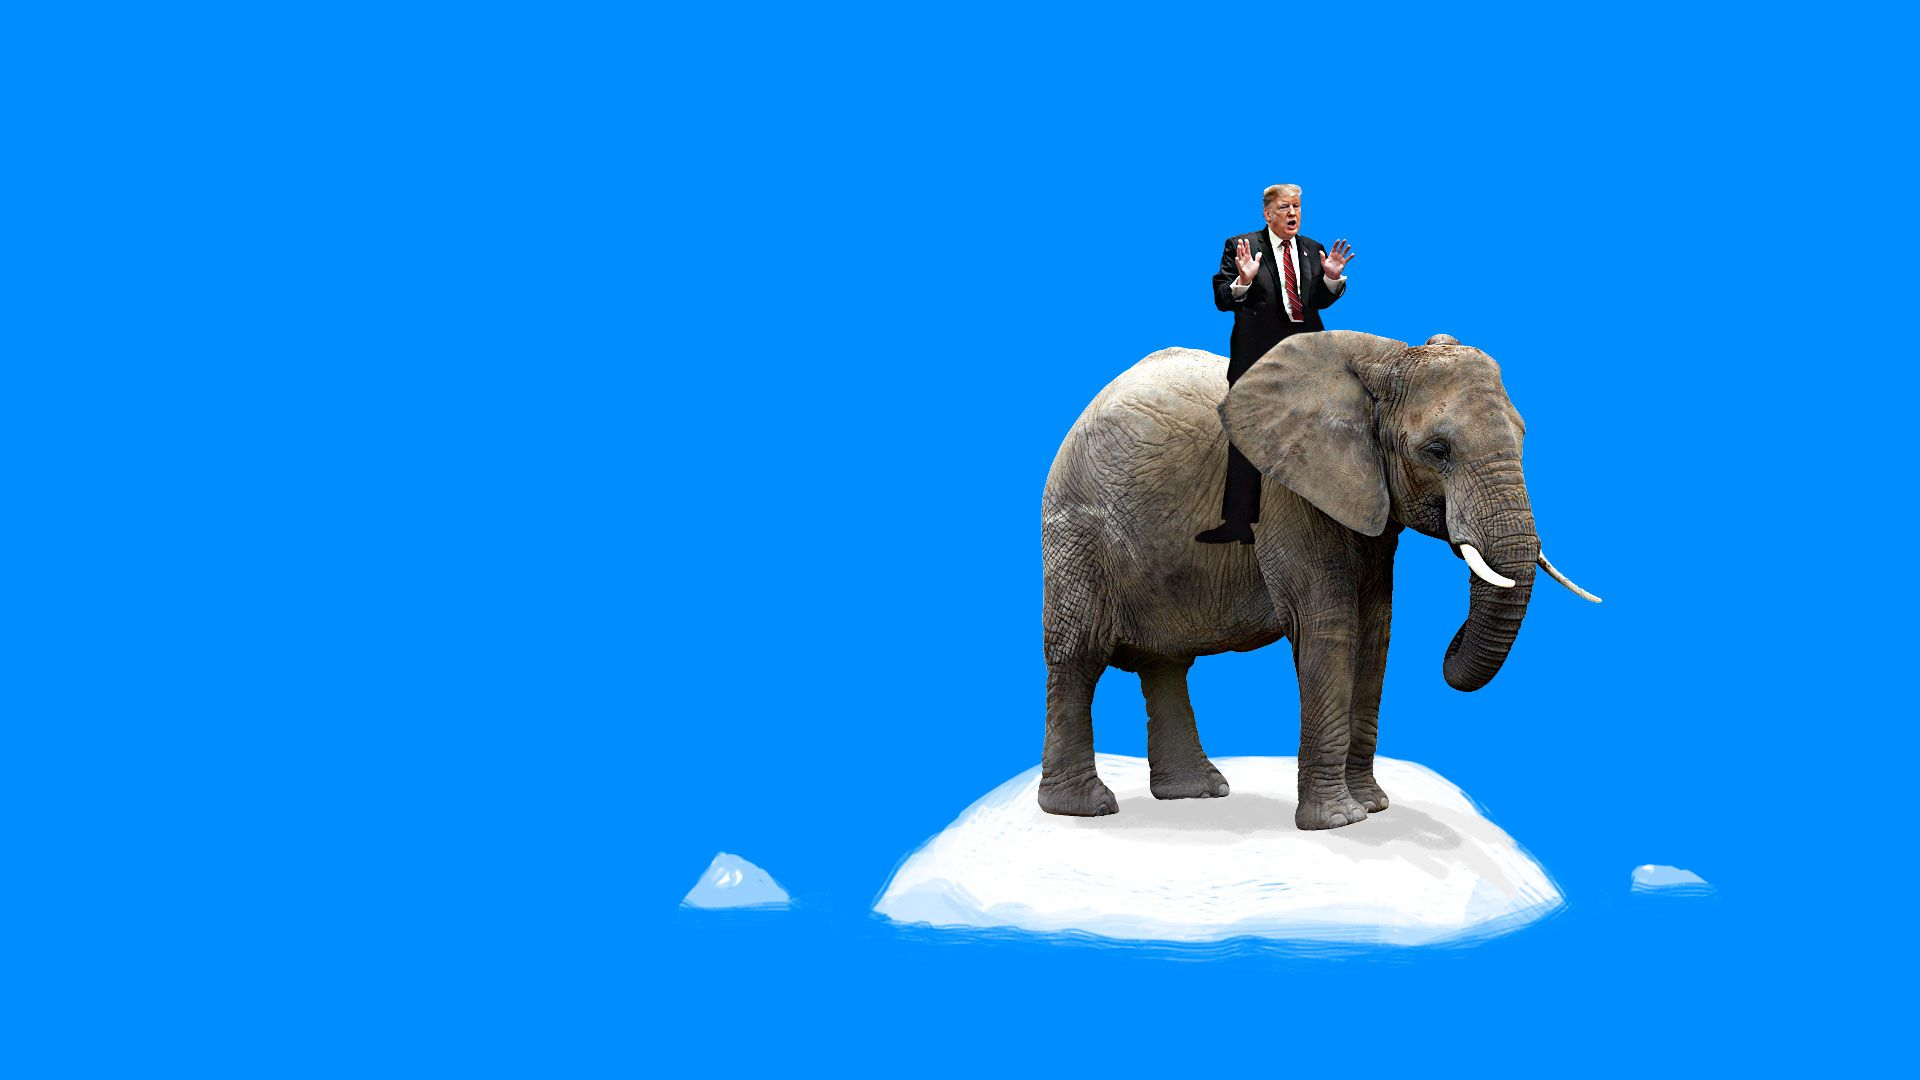 Trump riding an elephant while floating on a sheet of ice